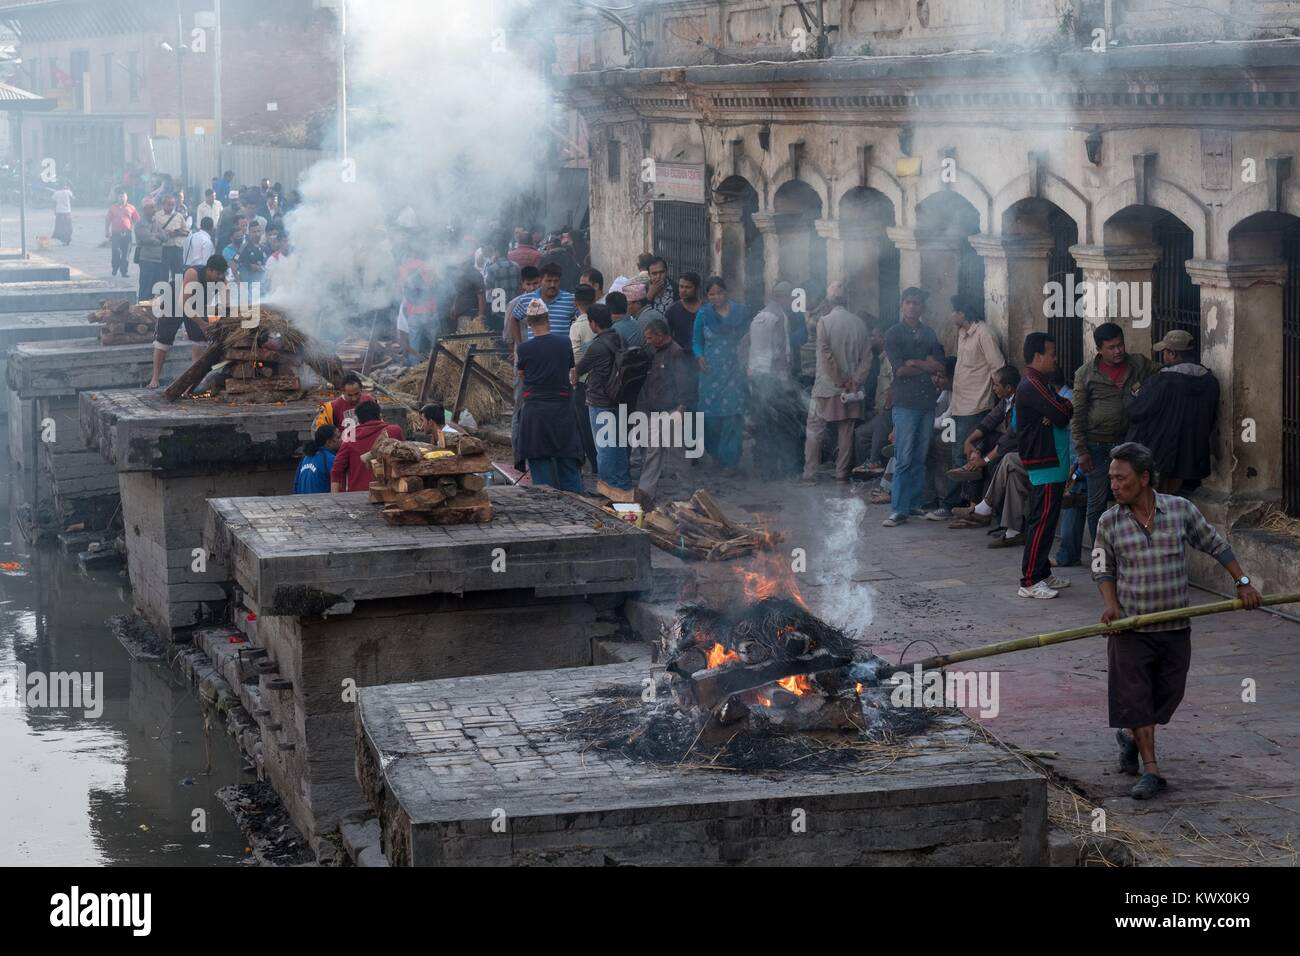 Fire burial at the main incineration site on the banks of the Bagmati River at the Hindu Shrine. | usage worldwide - Stock Image